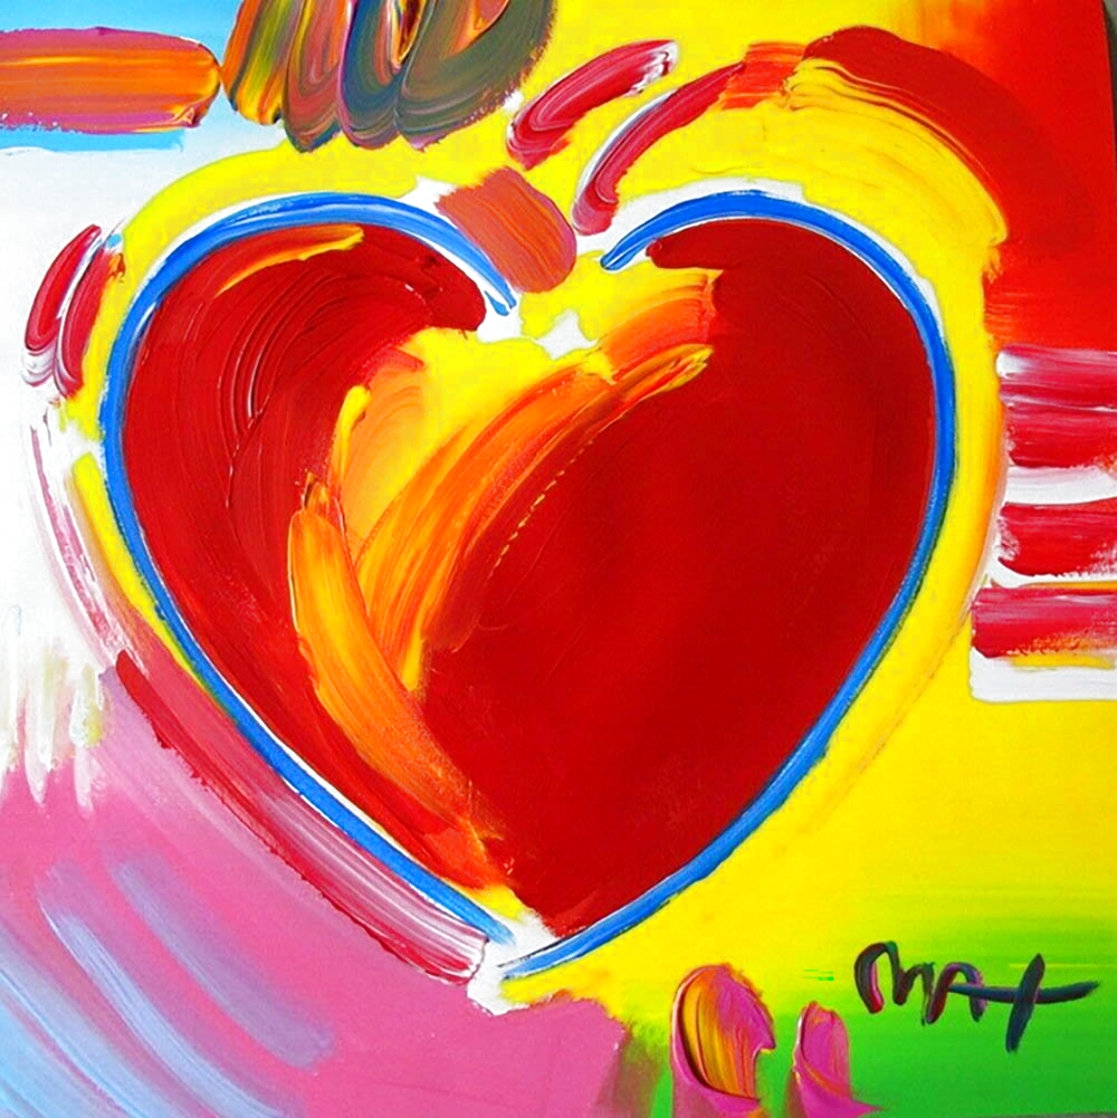 Heart 1999 Unique 14x14 Works on Paper (not prints) by Peter Max